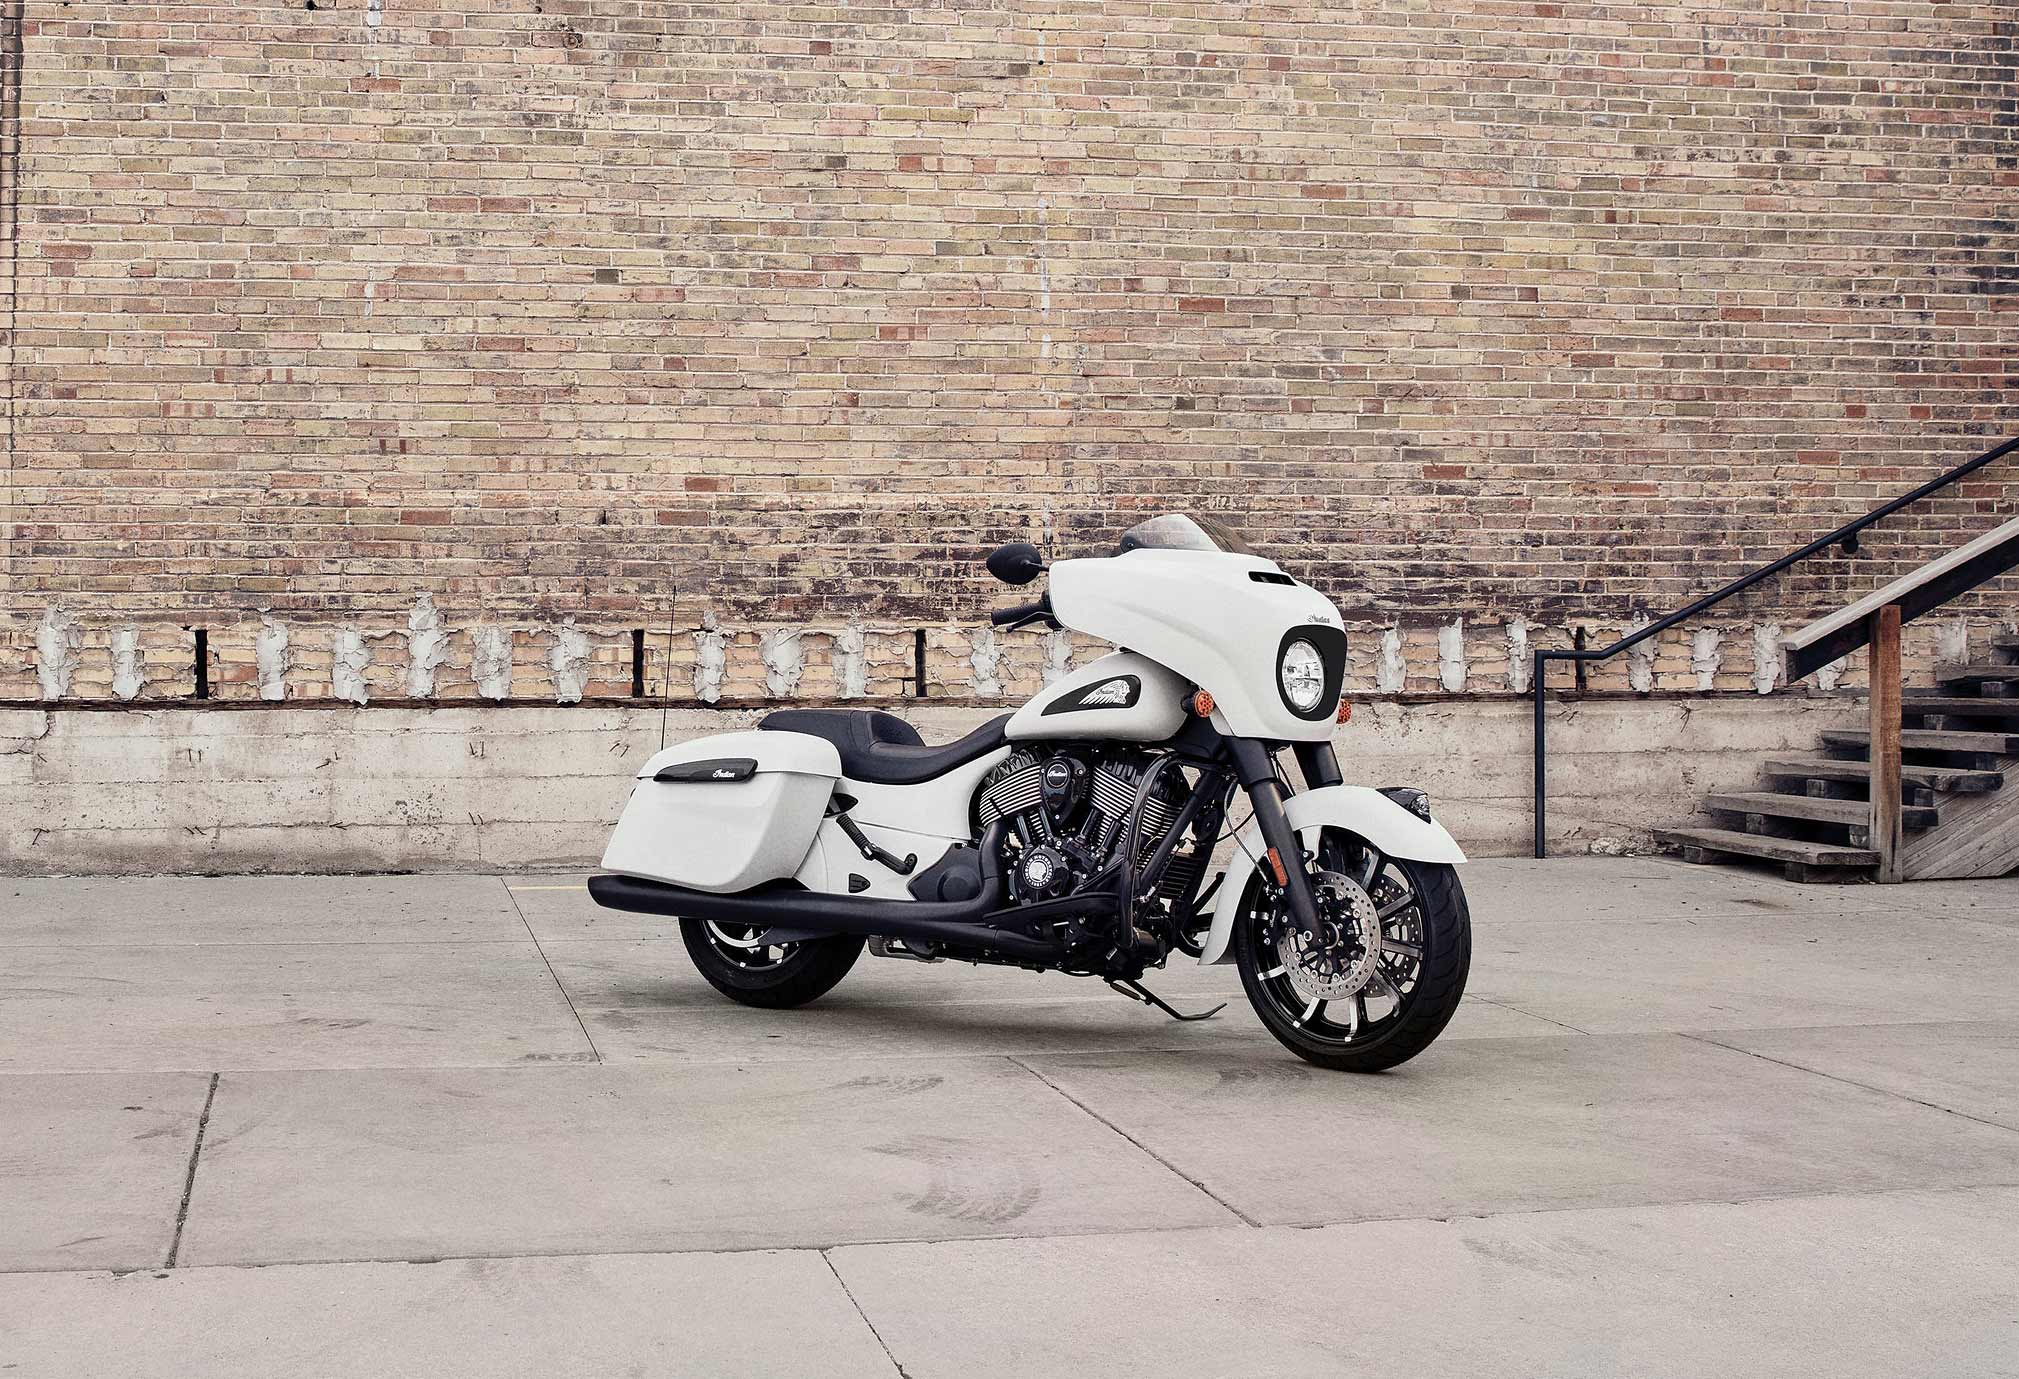 2019 Indian Chieftain Dark Horse Guide • Total Motorcycle